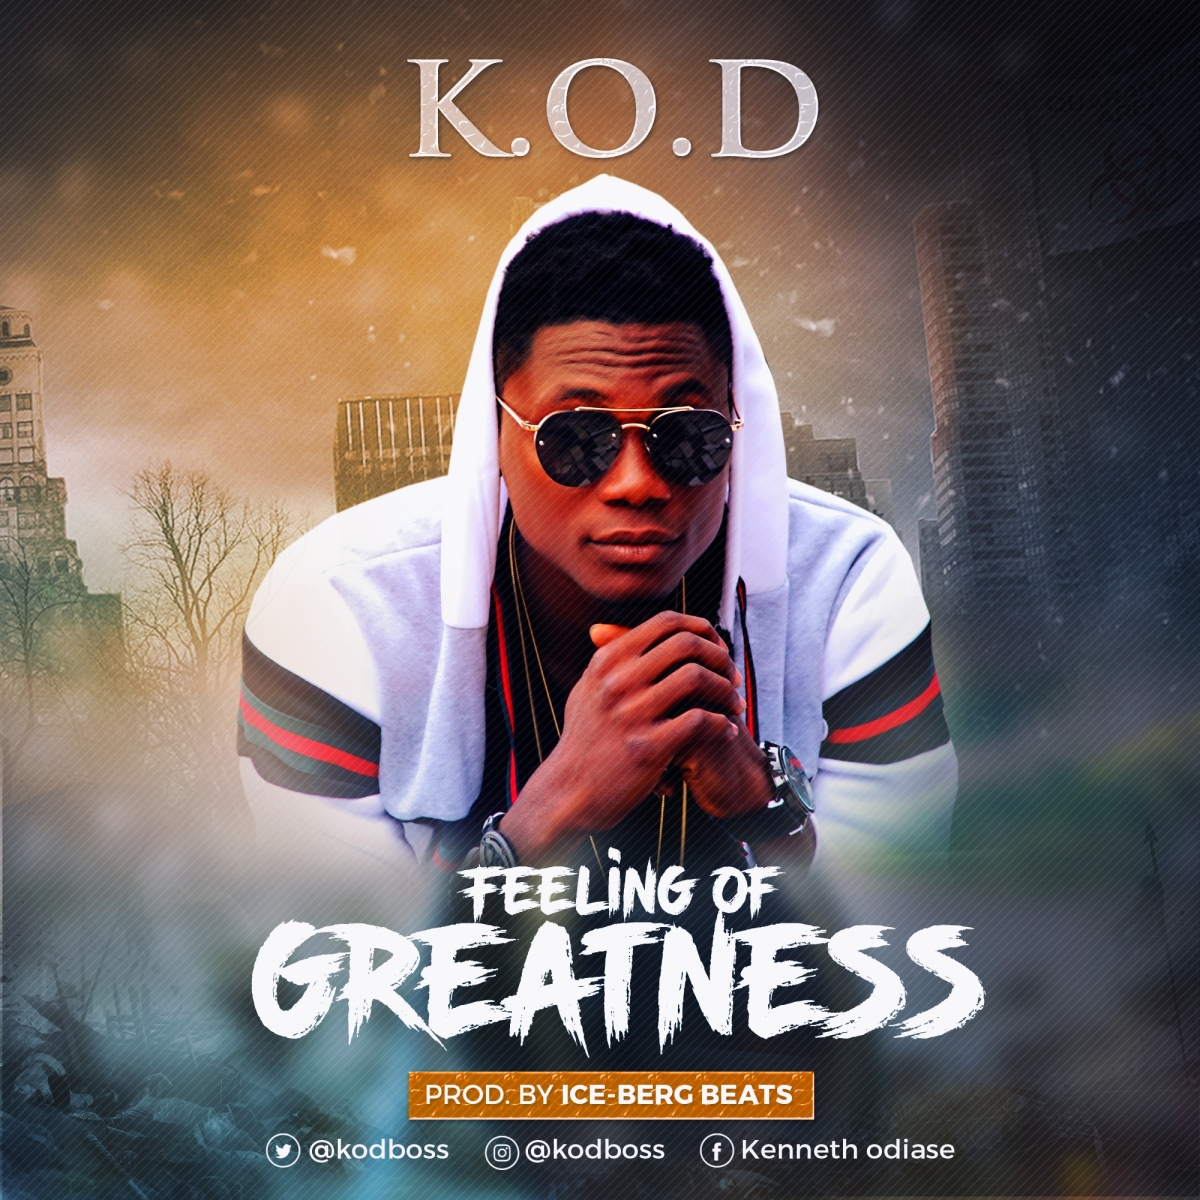 KOD - Feeling Of Greatness ( http://bit.ly/2xBB22A | @Kodboss | #UberTalksMusic )